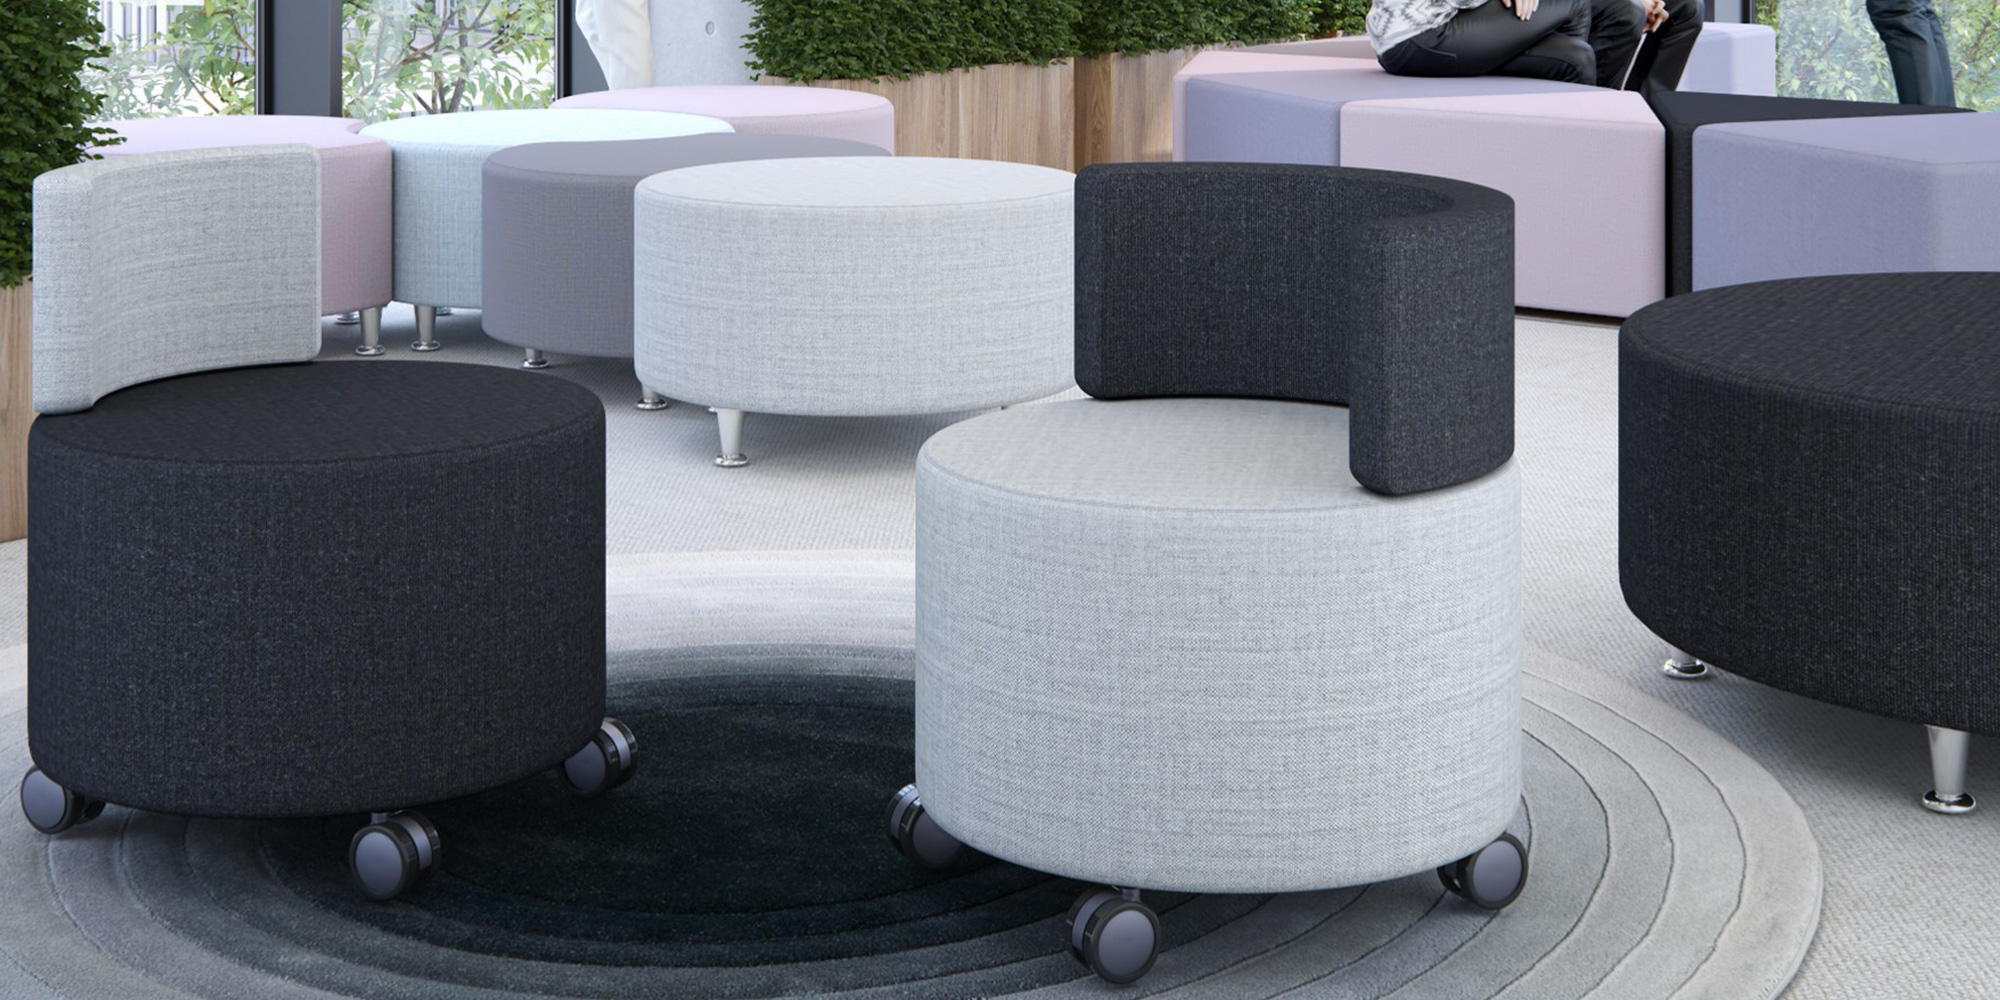 Adaptiv Modular Seating Roomset